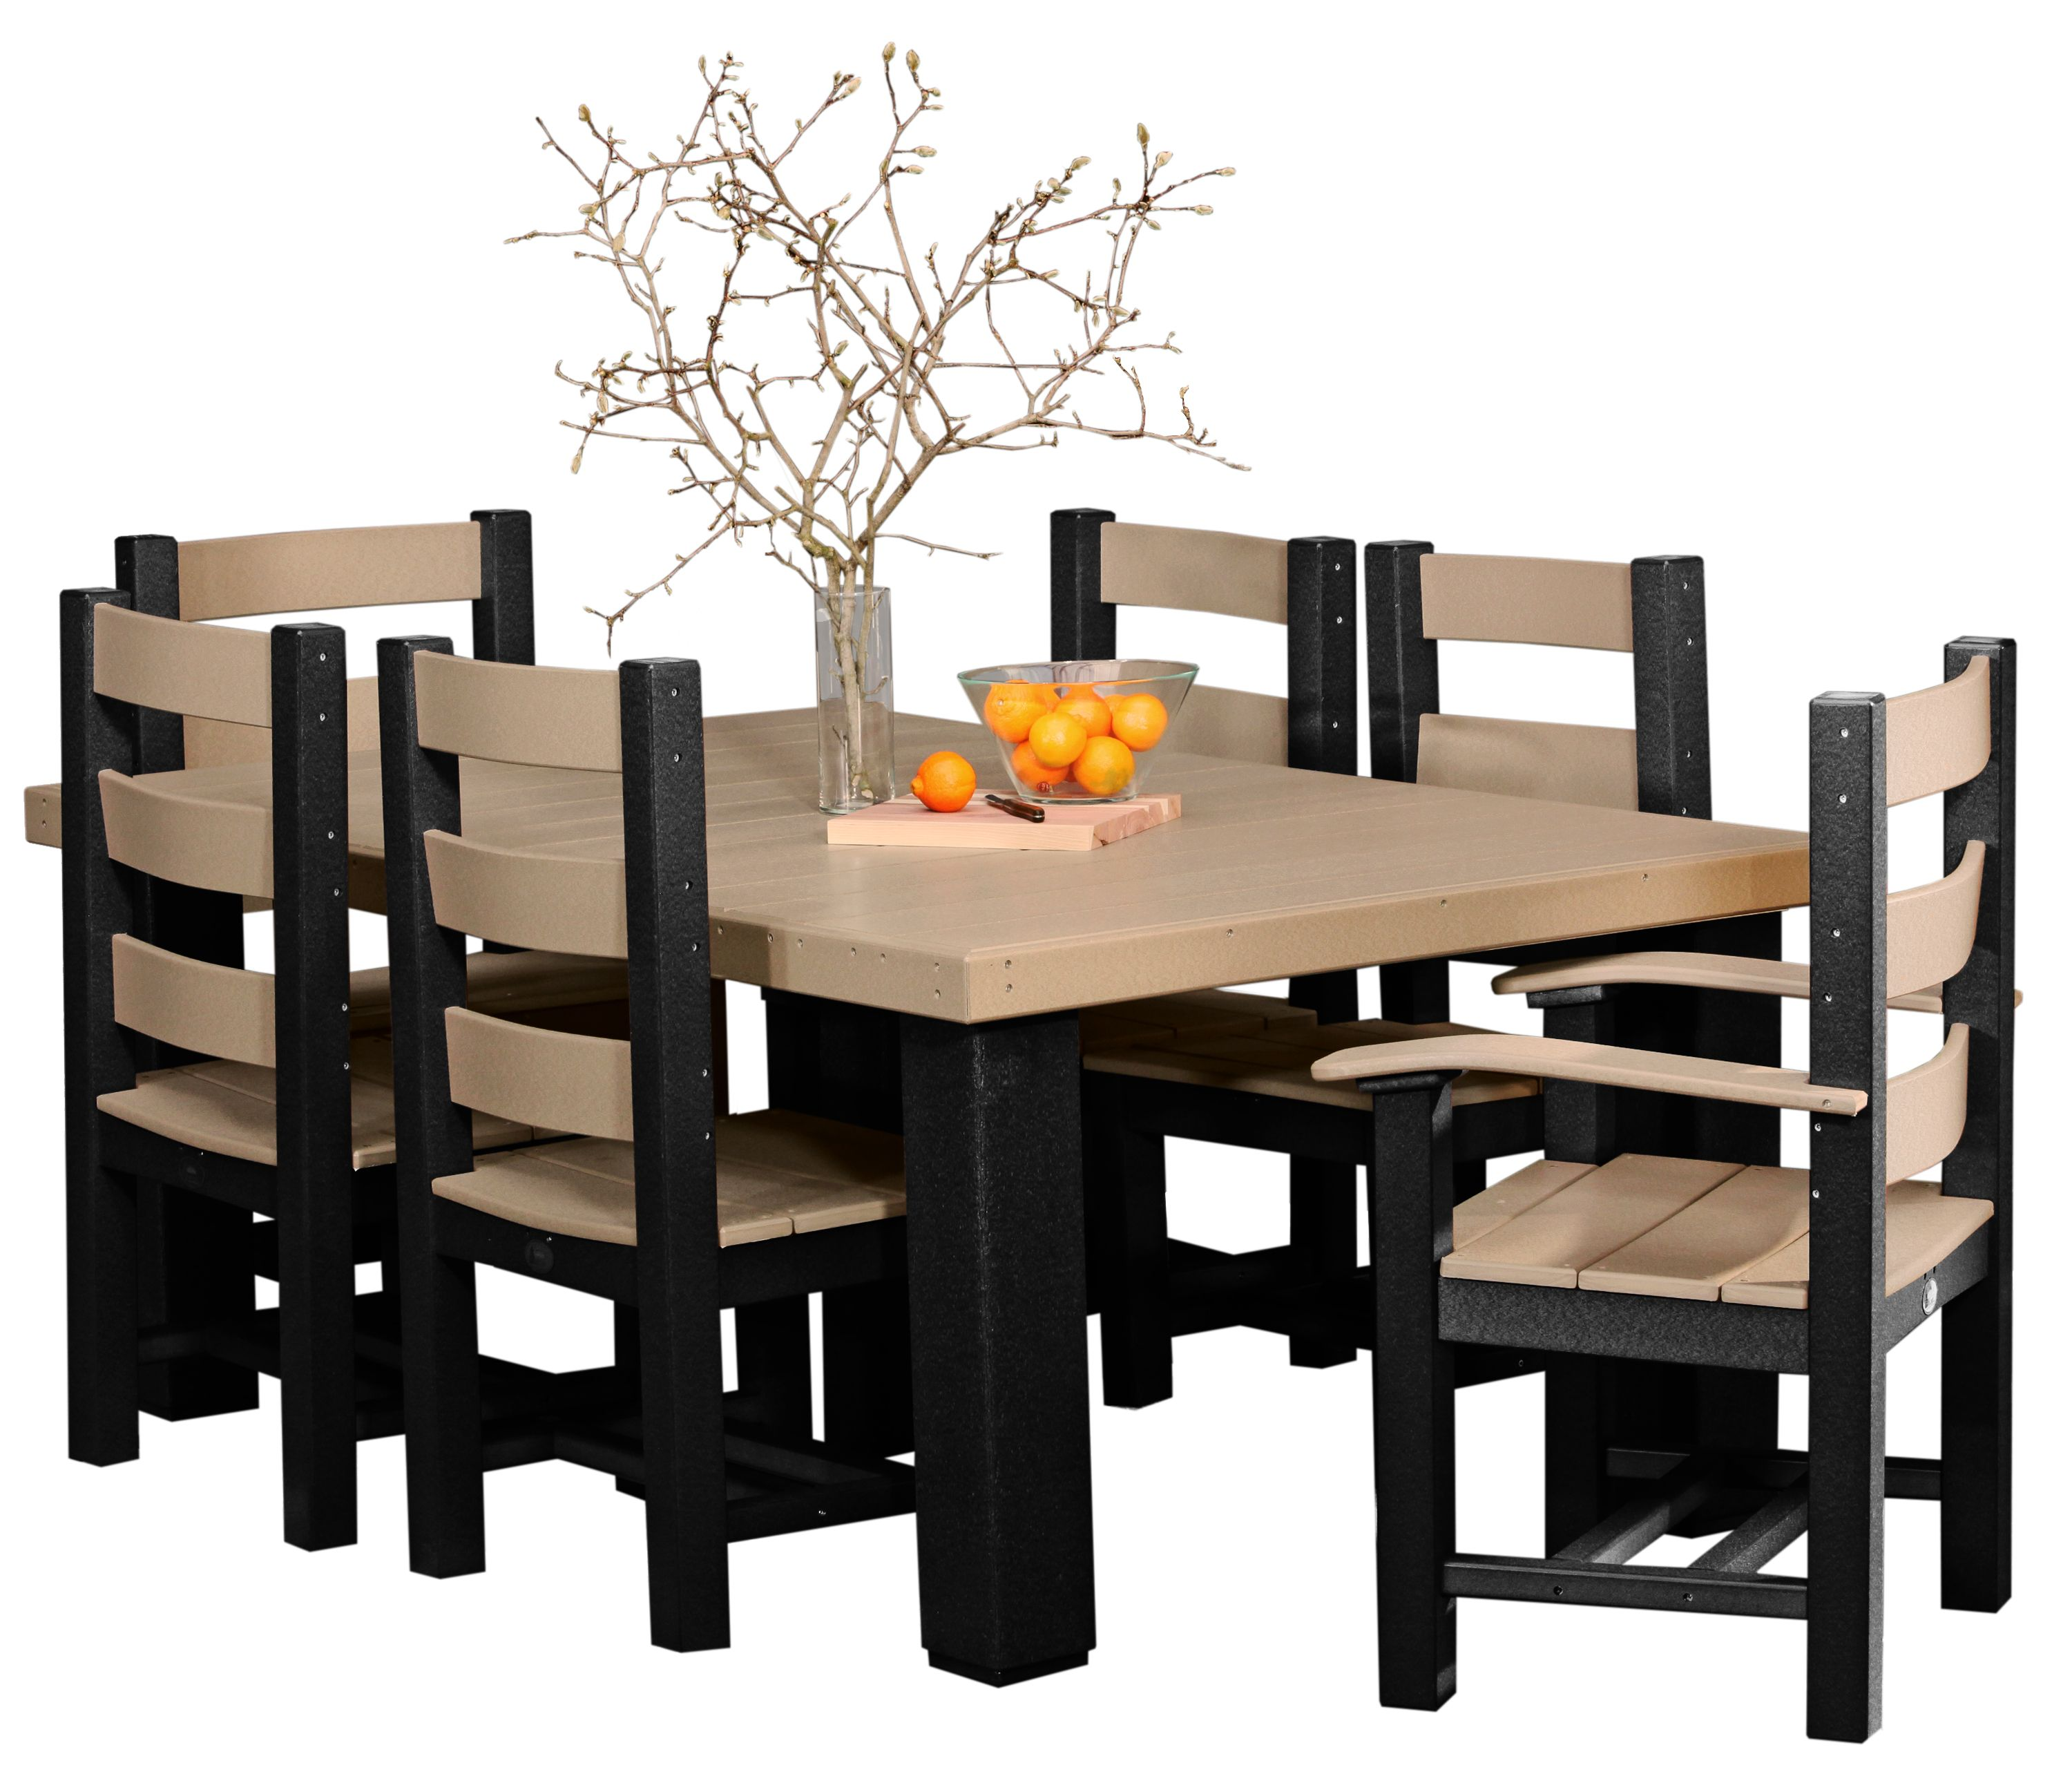 black amish kids table and chair set Tables & Chairs